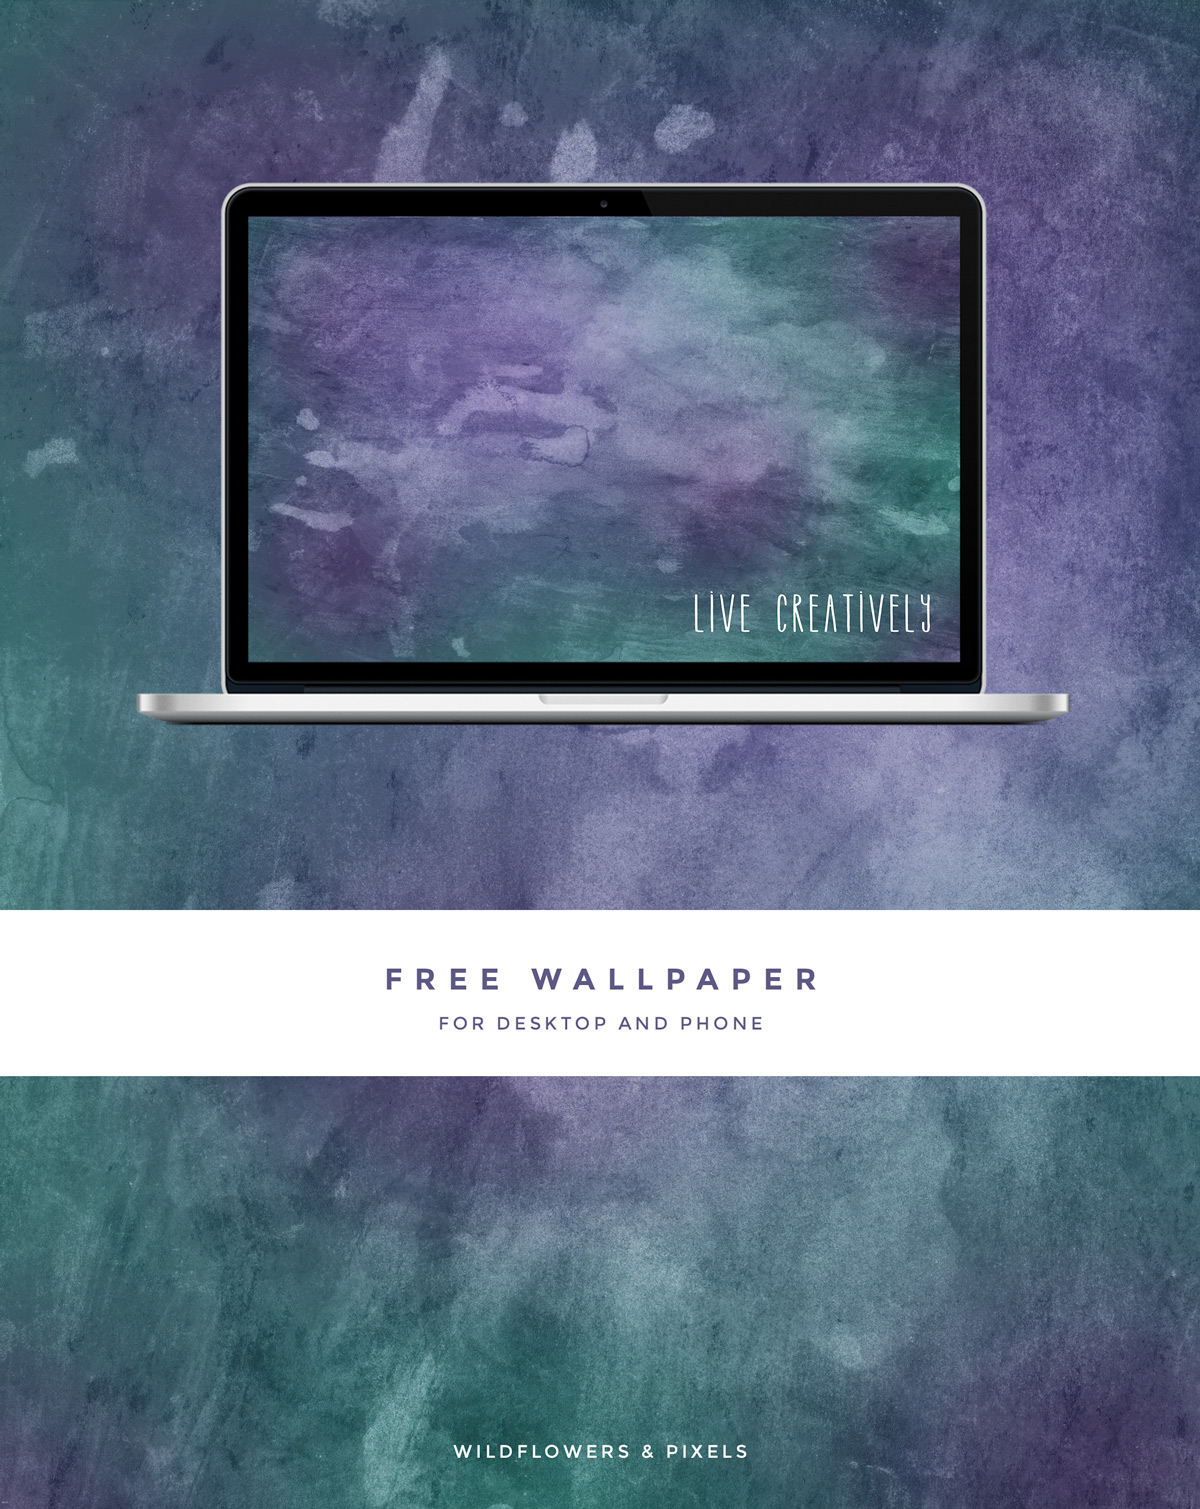 Live Creatively Free Wallpaper - This week the wallpaper features two gorgeous colours and a textured style background.  I  have been embracing a creative lifestyle recently so I added the 'Live Creatively' text as a gentle reminder.